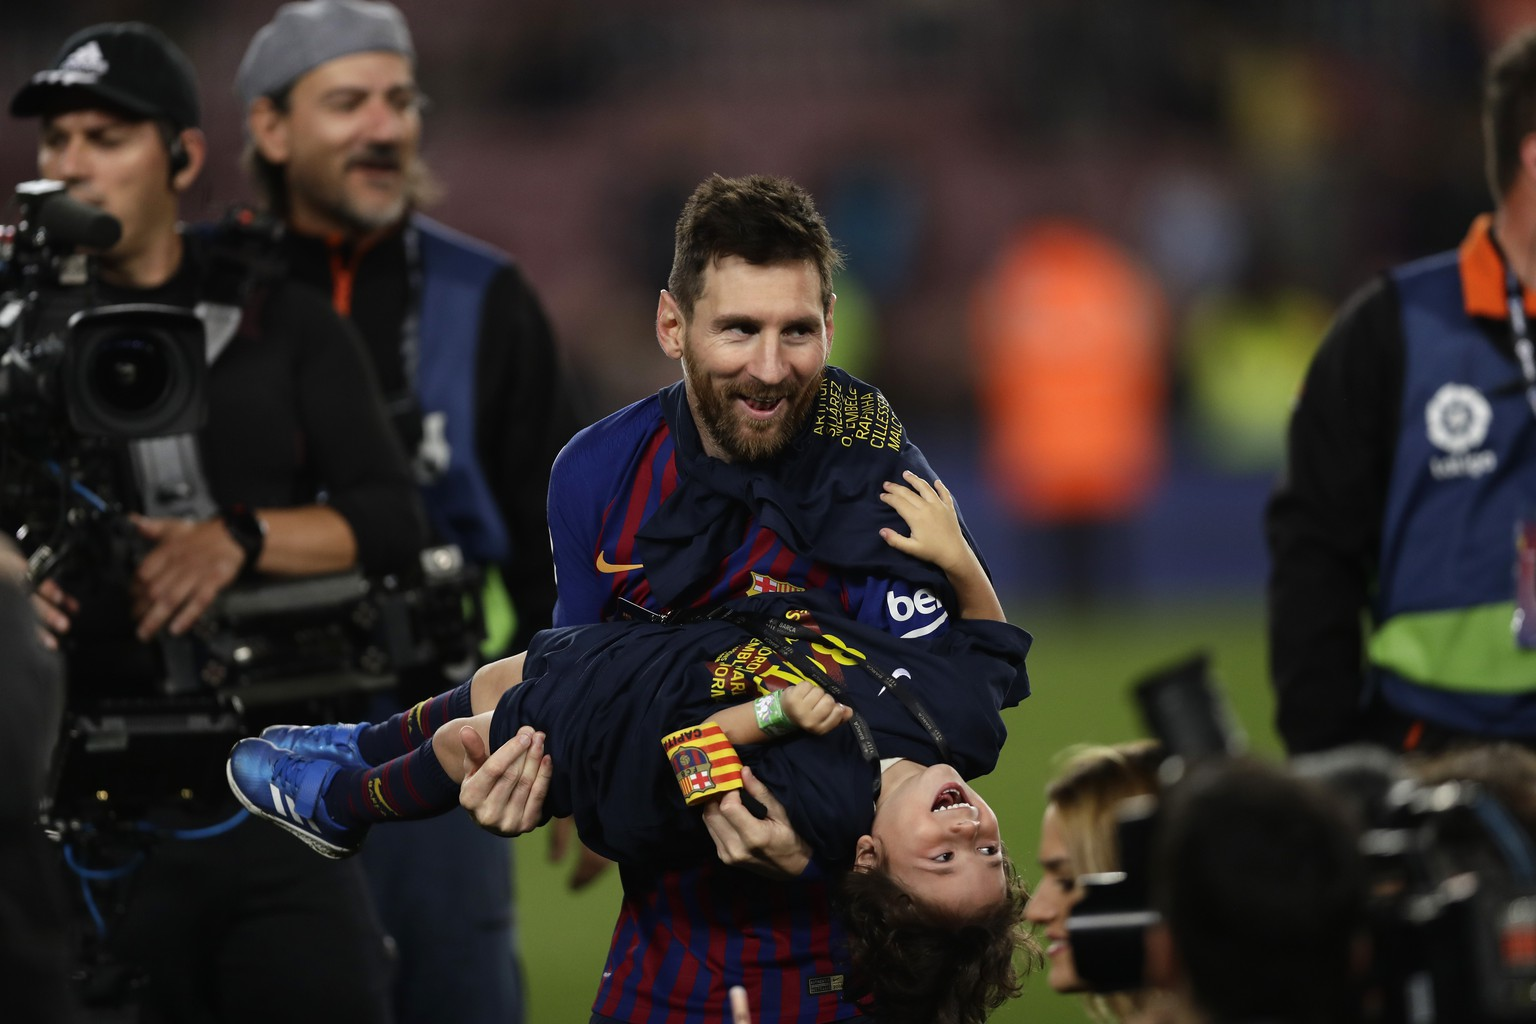 Barcelona forward Lionel Messi celebrates with his son after winning the Spanish League title, at the end of the Spanish La Liga soccer match between FC Barcelona and Levante at the Camp Nou stadium in Barcelona, Spain, Saturday, April 27, 2019. Barcelona clinched the Spanish La Liga title, with three matches to spare, after it defeated Levante 1-0. (AP Photo/Manu Fernandez)